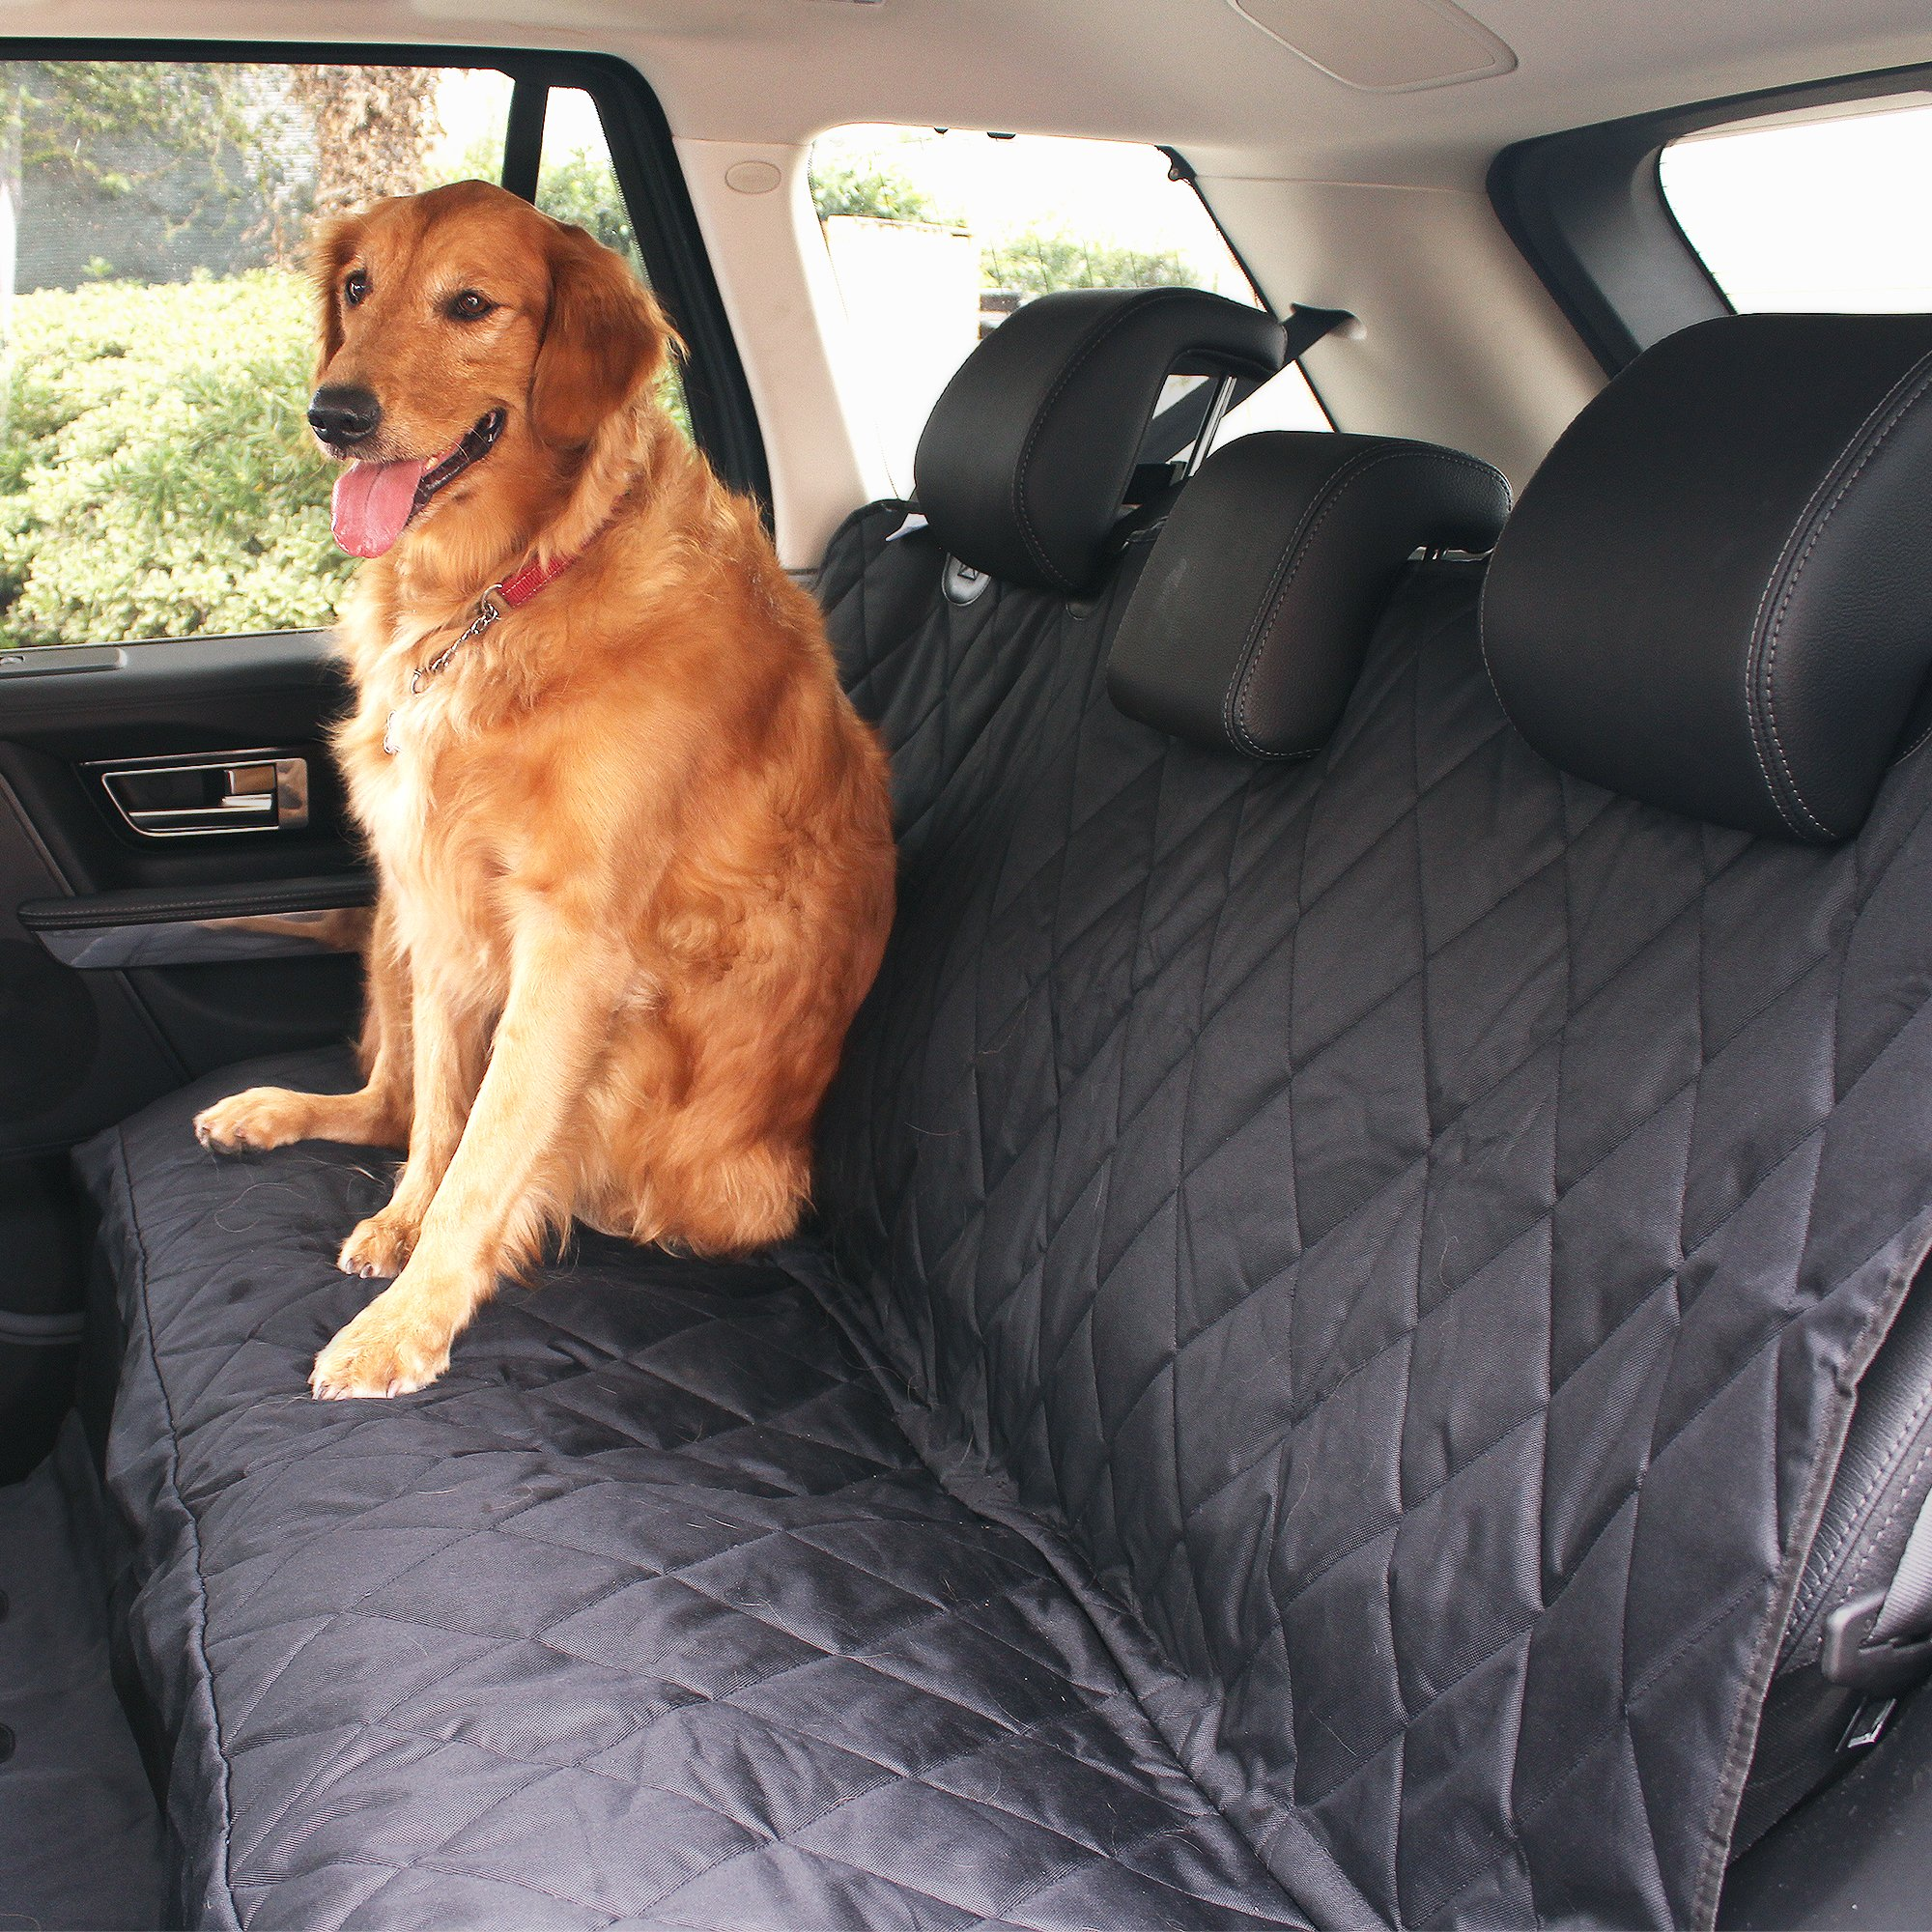 BarksBar Pet Car Seat Cover with Seat Anchors for Cars, Trucks and SUV's, Water Proof and Non-Slip Backing Regular, Black by BarksBar (Image #5)